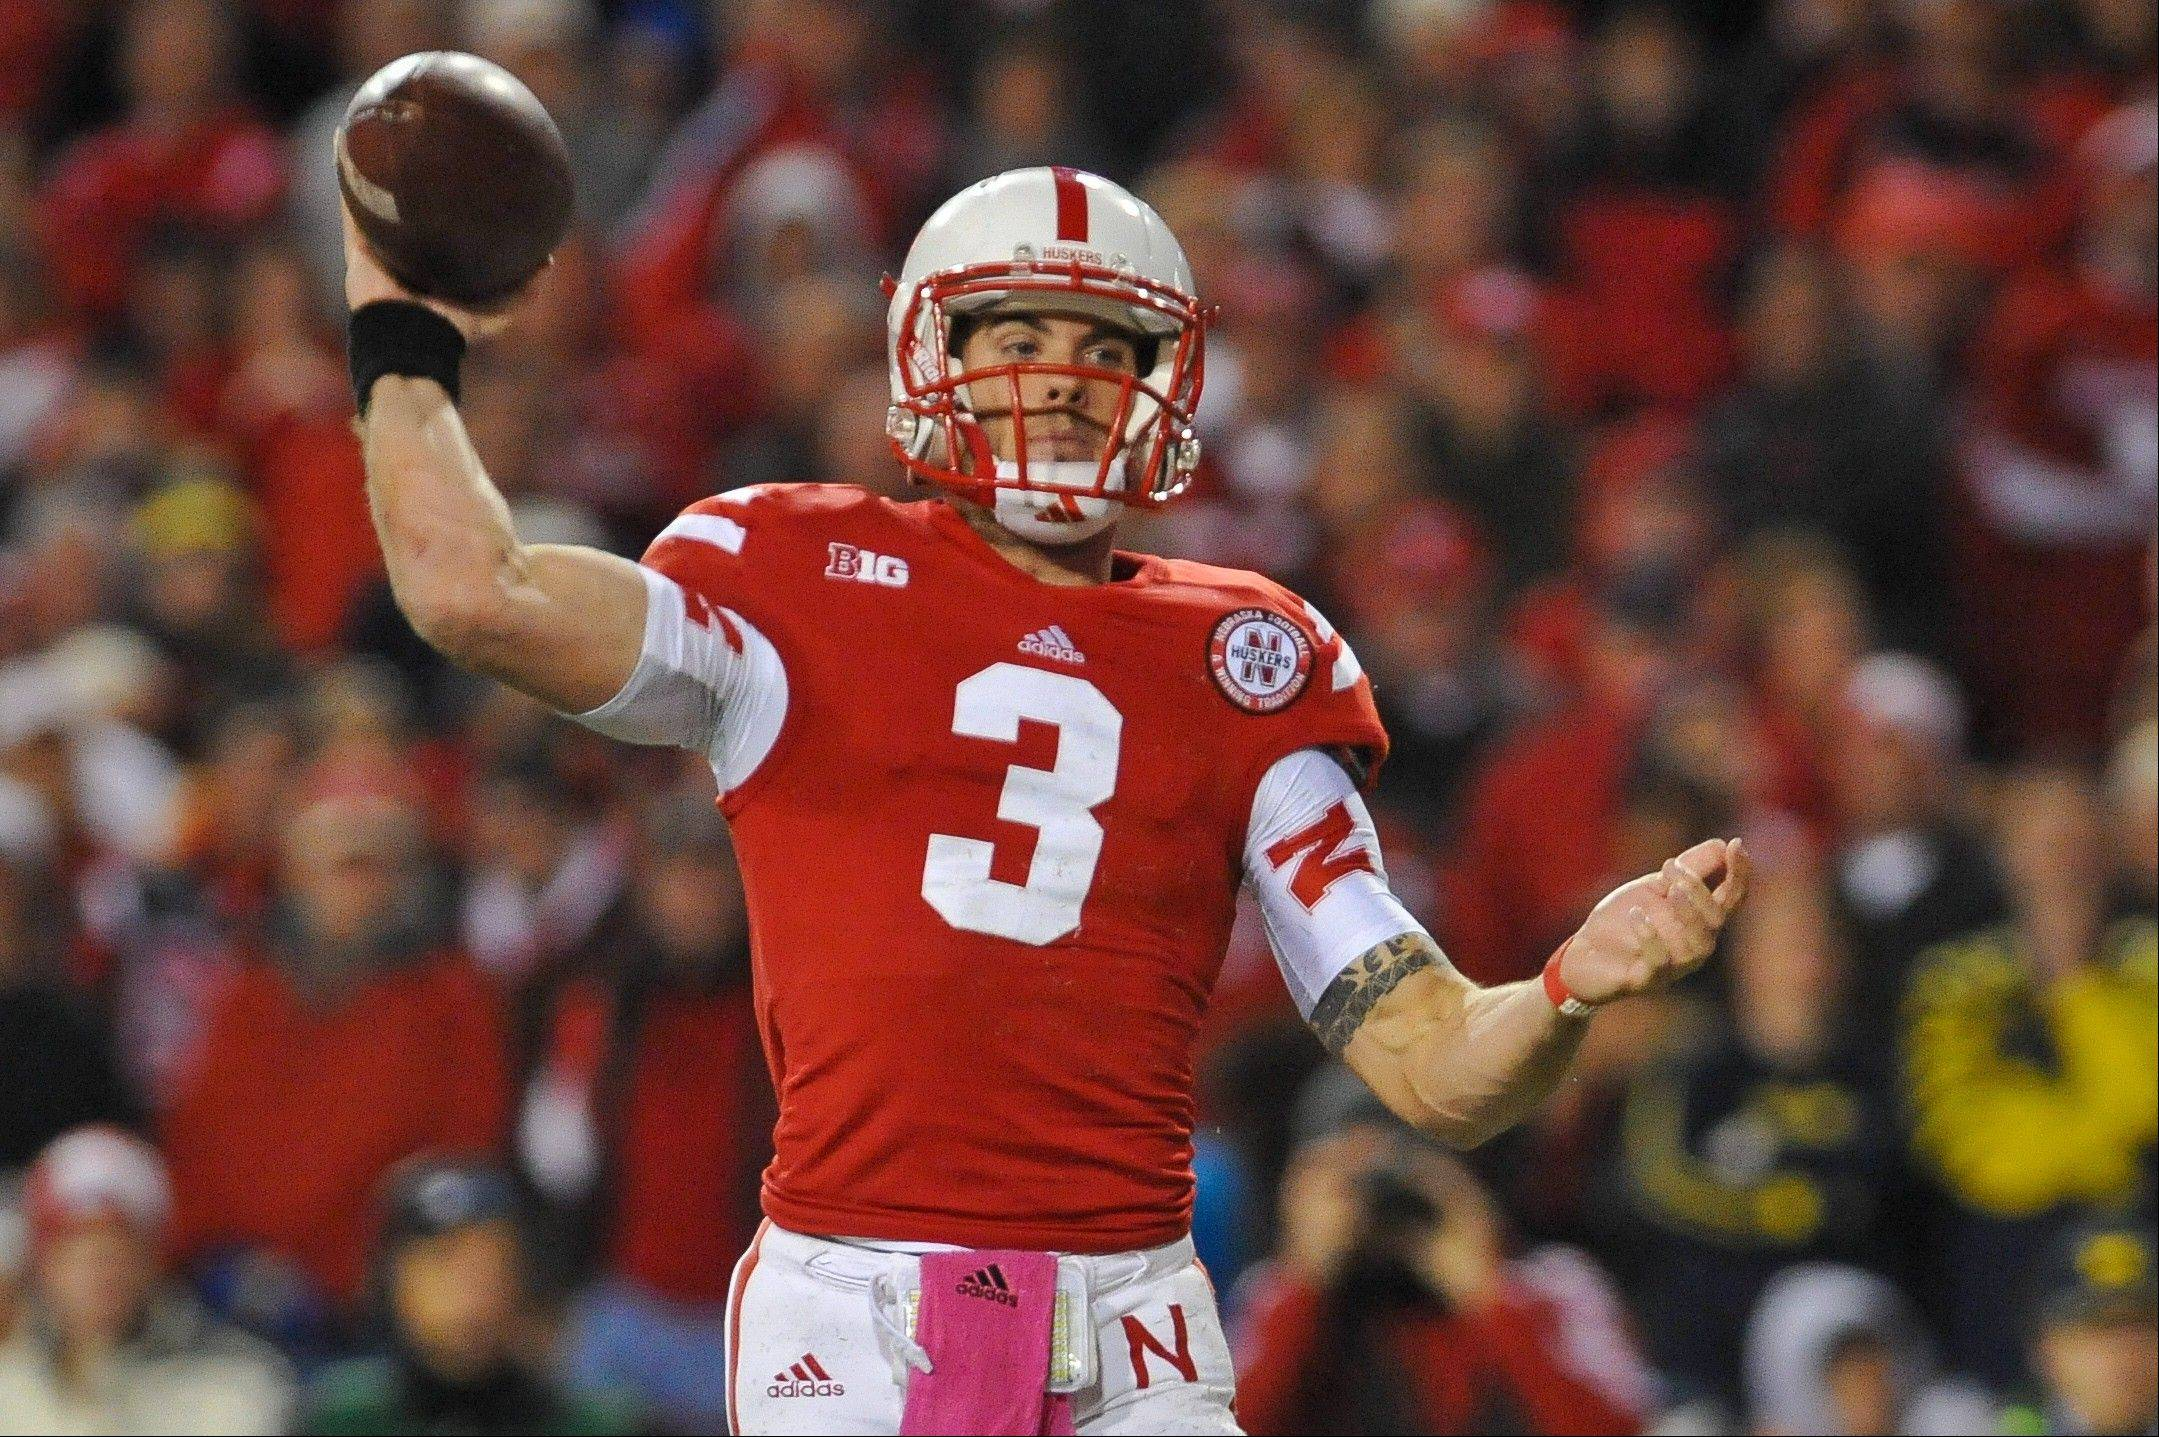 Nebraska�s Taylor Martinez throws Saturday against Michigan in Lincoln, Neb. Nebraska beat Michigan 23-9.